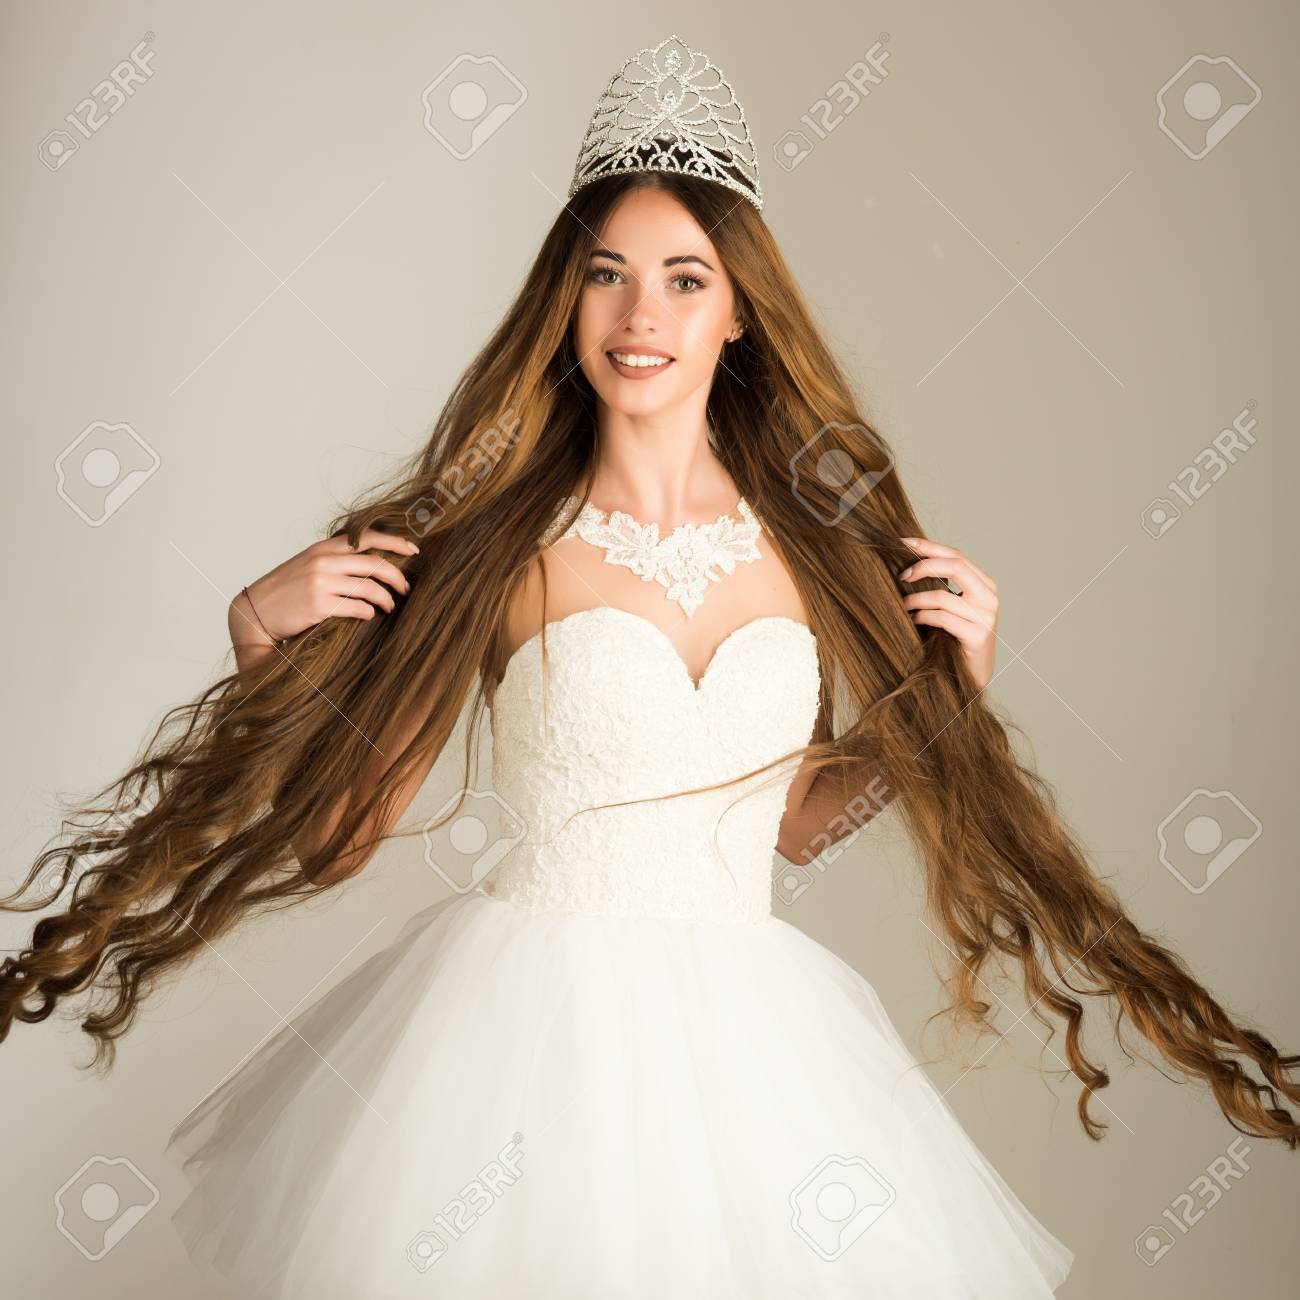 Beauty Salon And Wedding Fashion Girl Has Fashionable Makeup Stock Photo Picture And Royalty Free Image Image 89053545